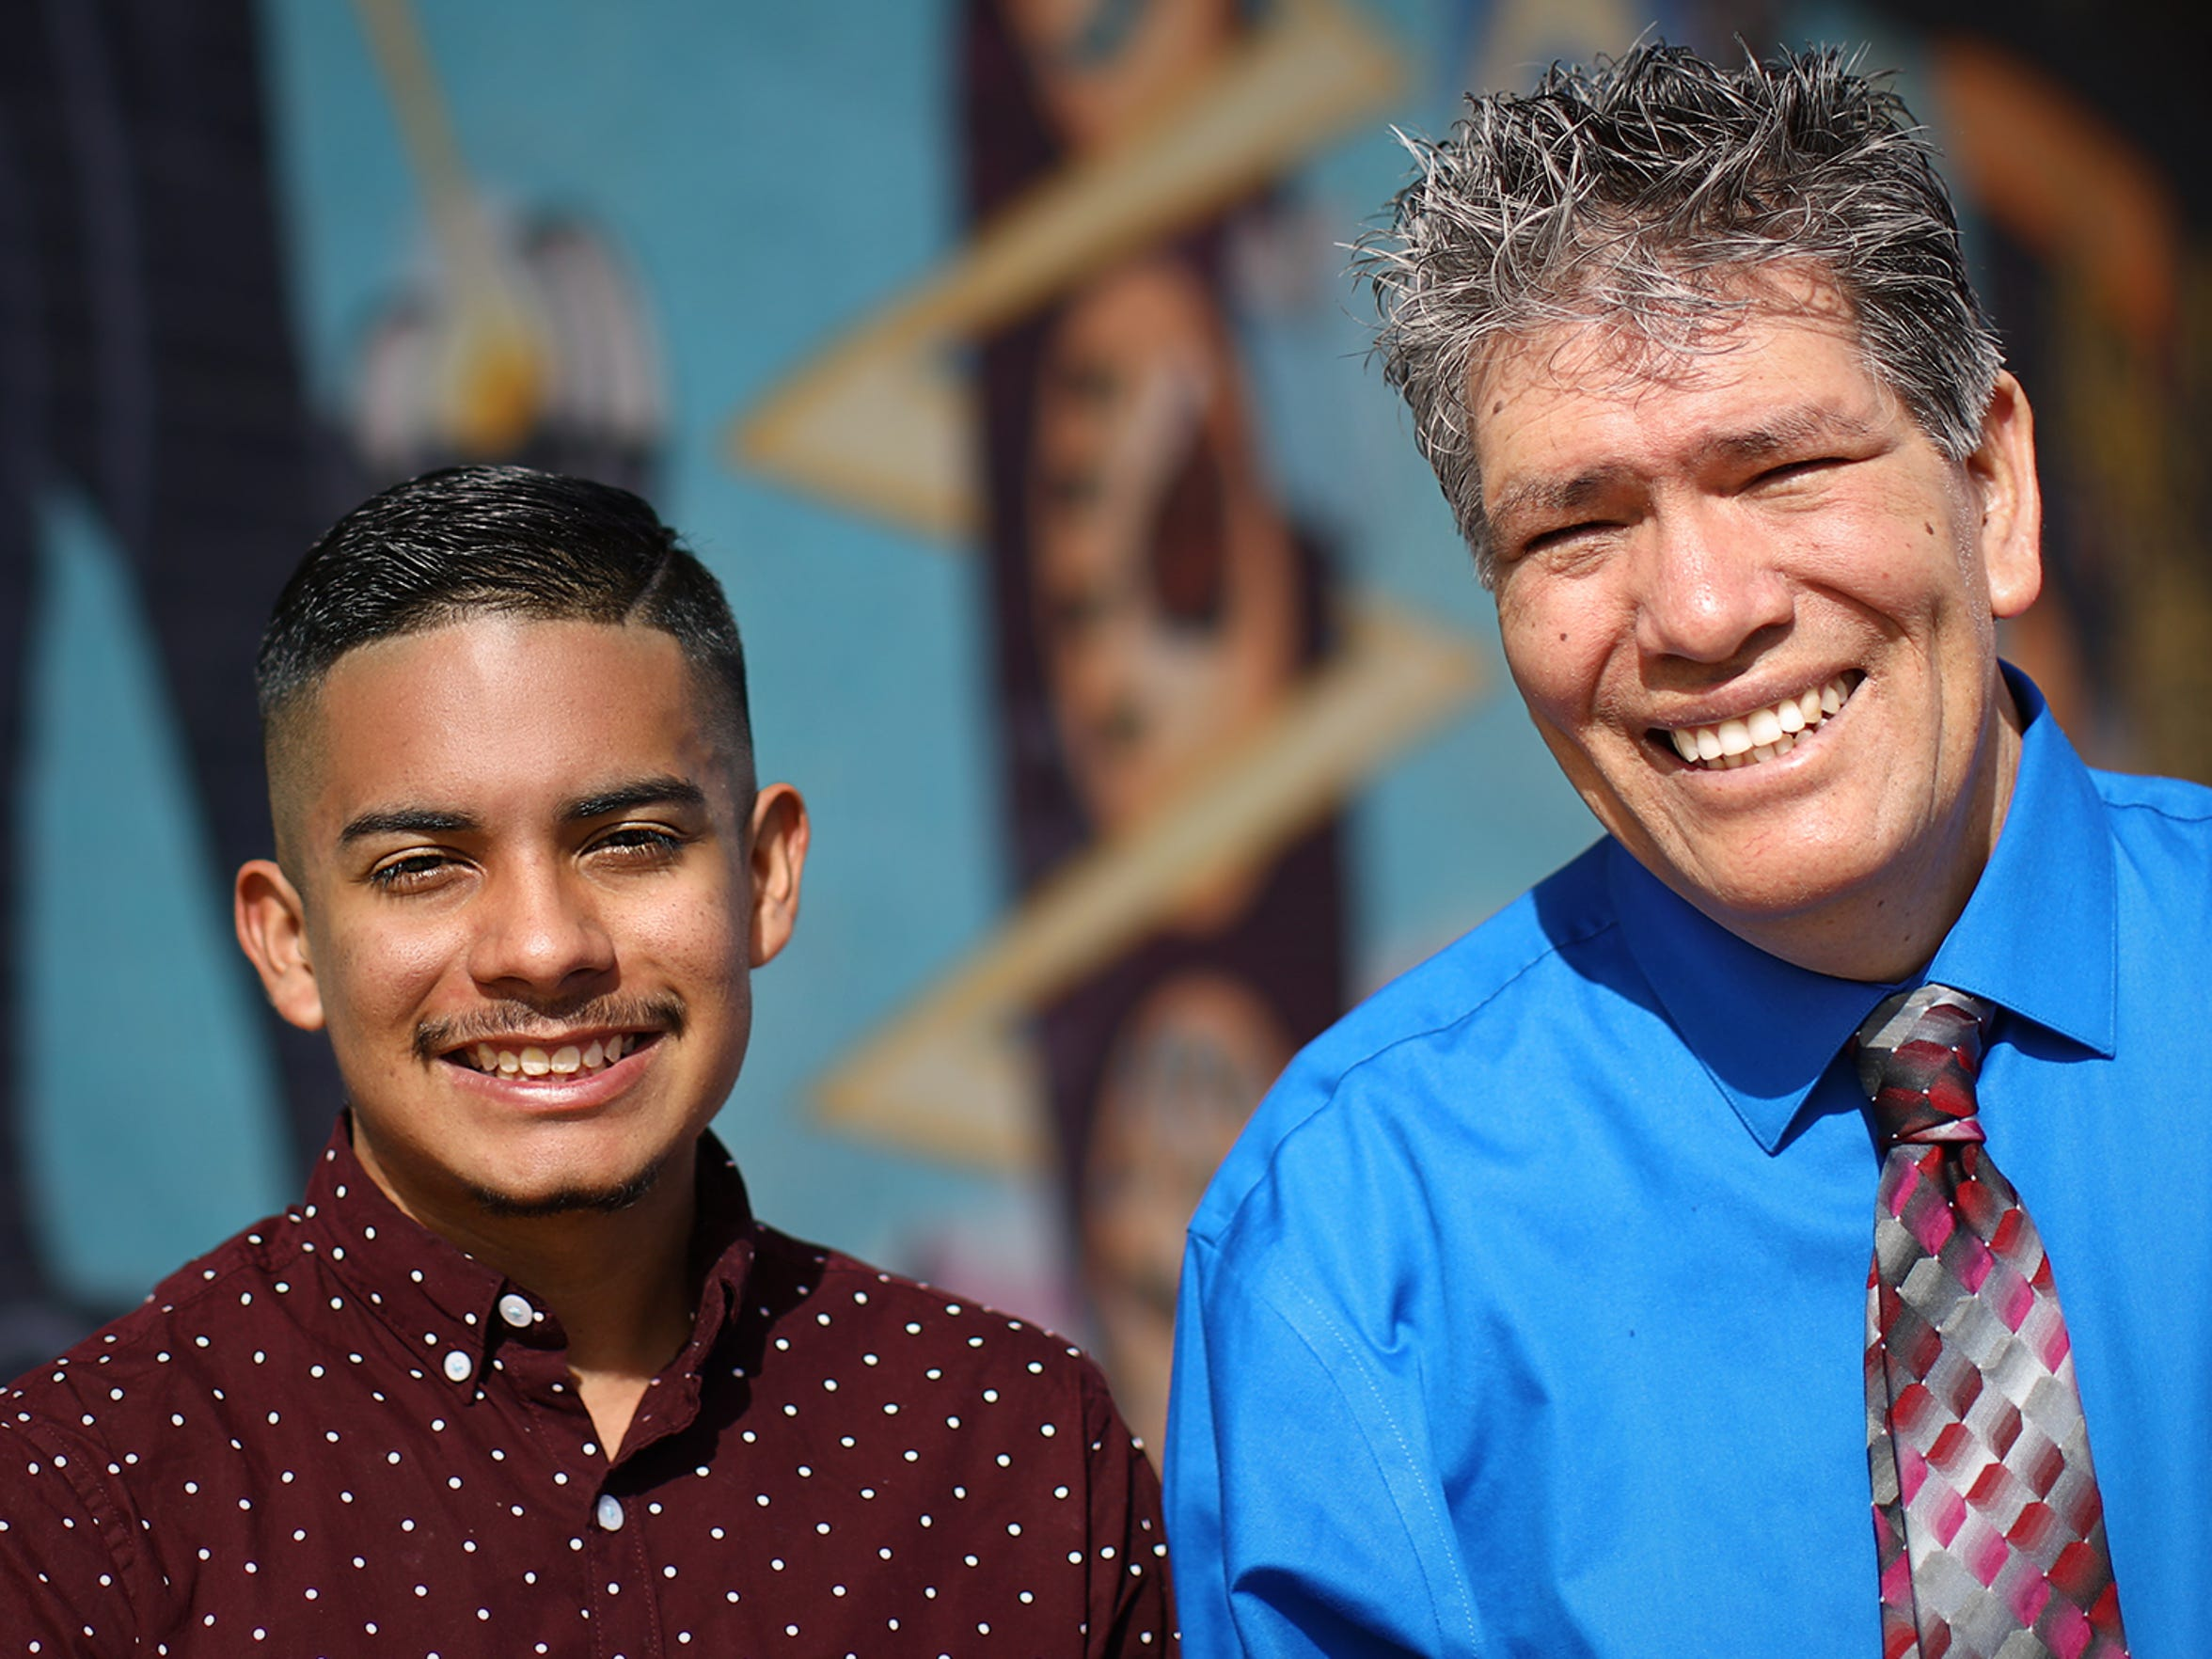 Gabriel Holguin, left, a student at Alma d'Arte Charter High School, nominated his former teacher, Manuel Mendoza, for national recognition through a nonprofit called Honored. And Mendoza was selected as the April 2018 honoree.